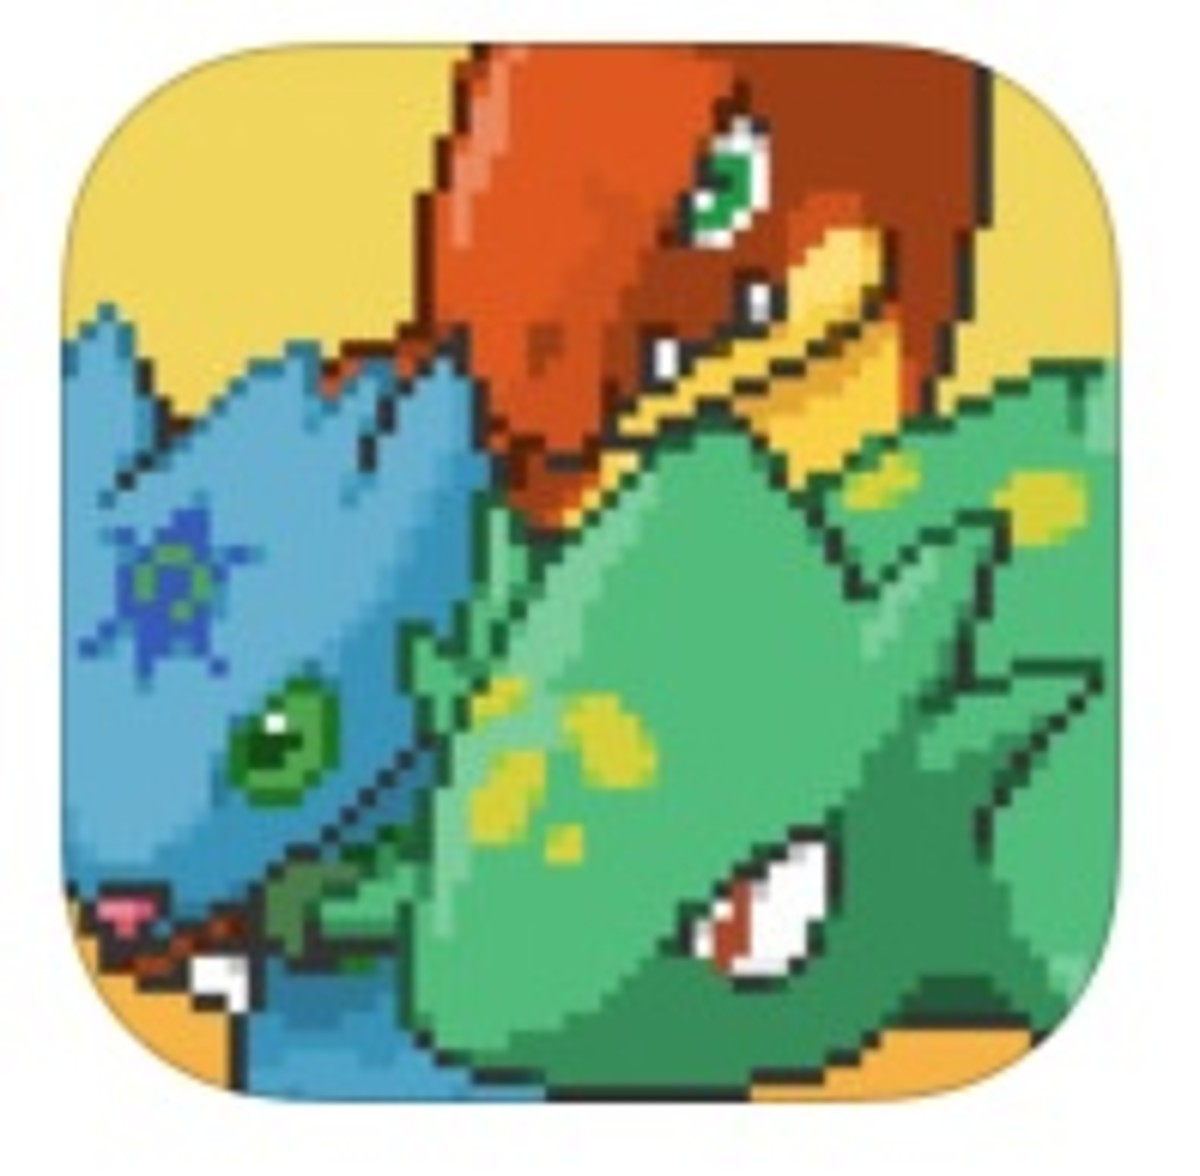 My Favourite Of The Games Like Pokémon For iOS.